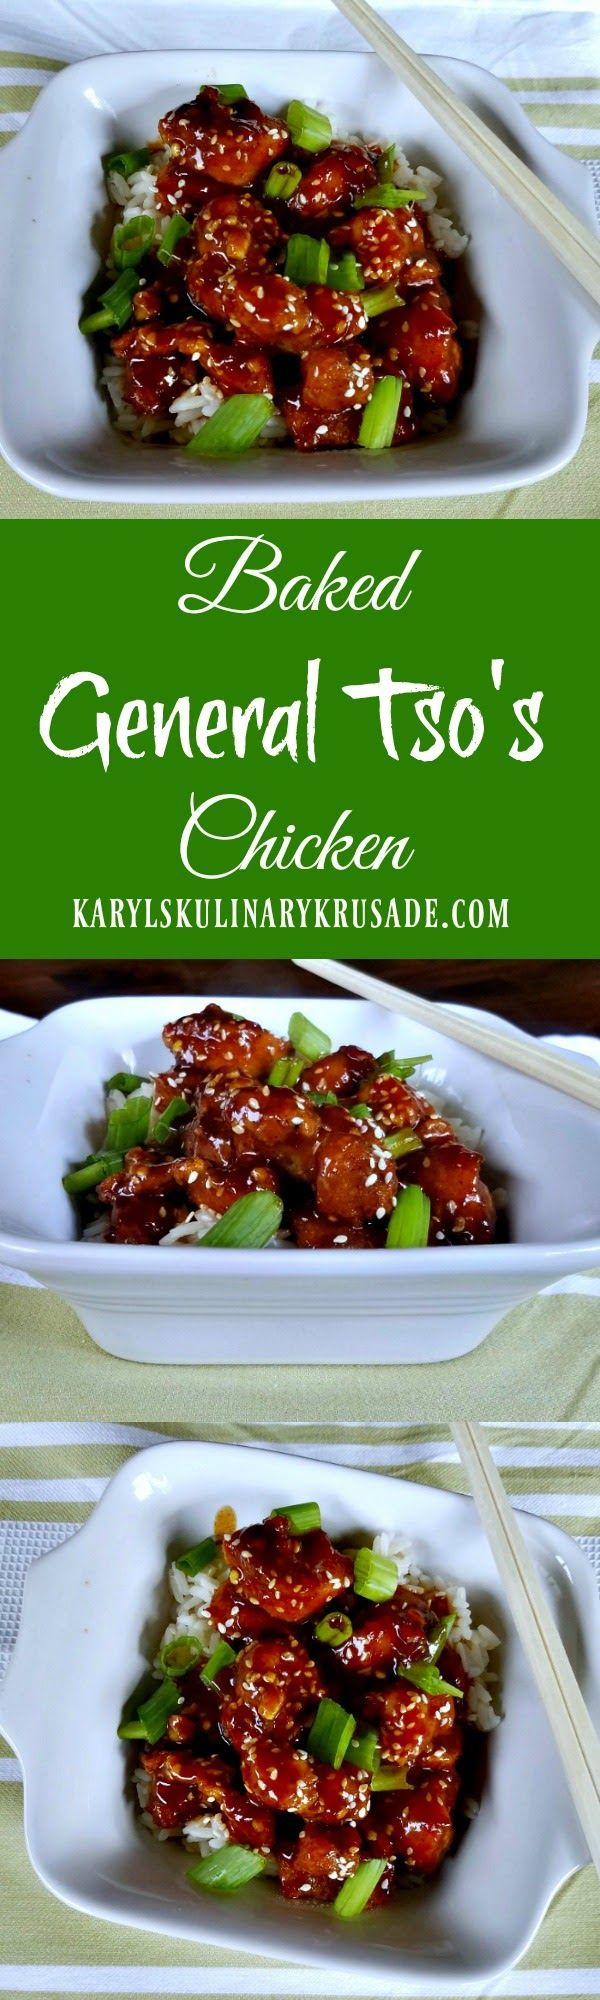 Delicious baked General Tso's chicken recipe from Guest blogger Karyl Henry at Karyl's Kulinary Krusade to make in your own kitchen